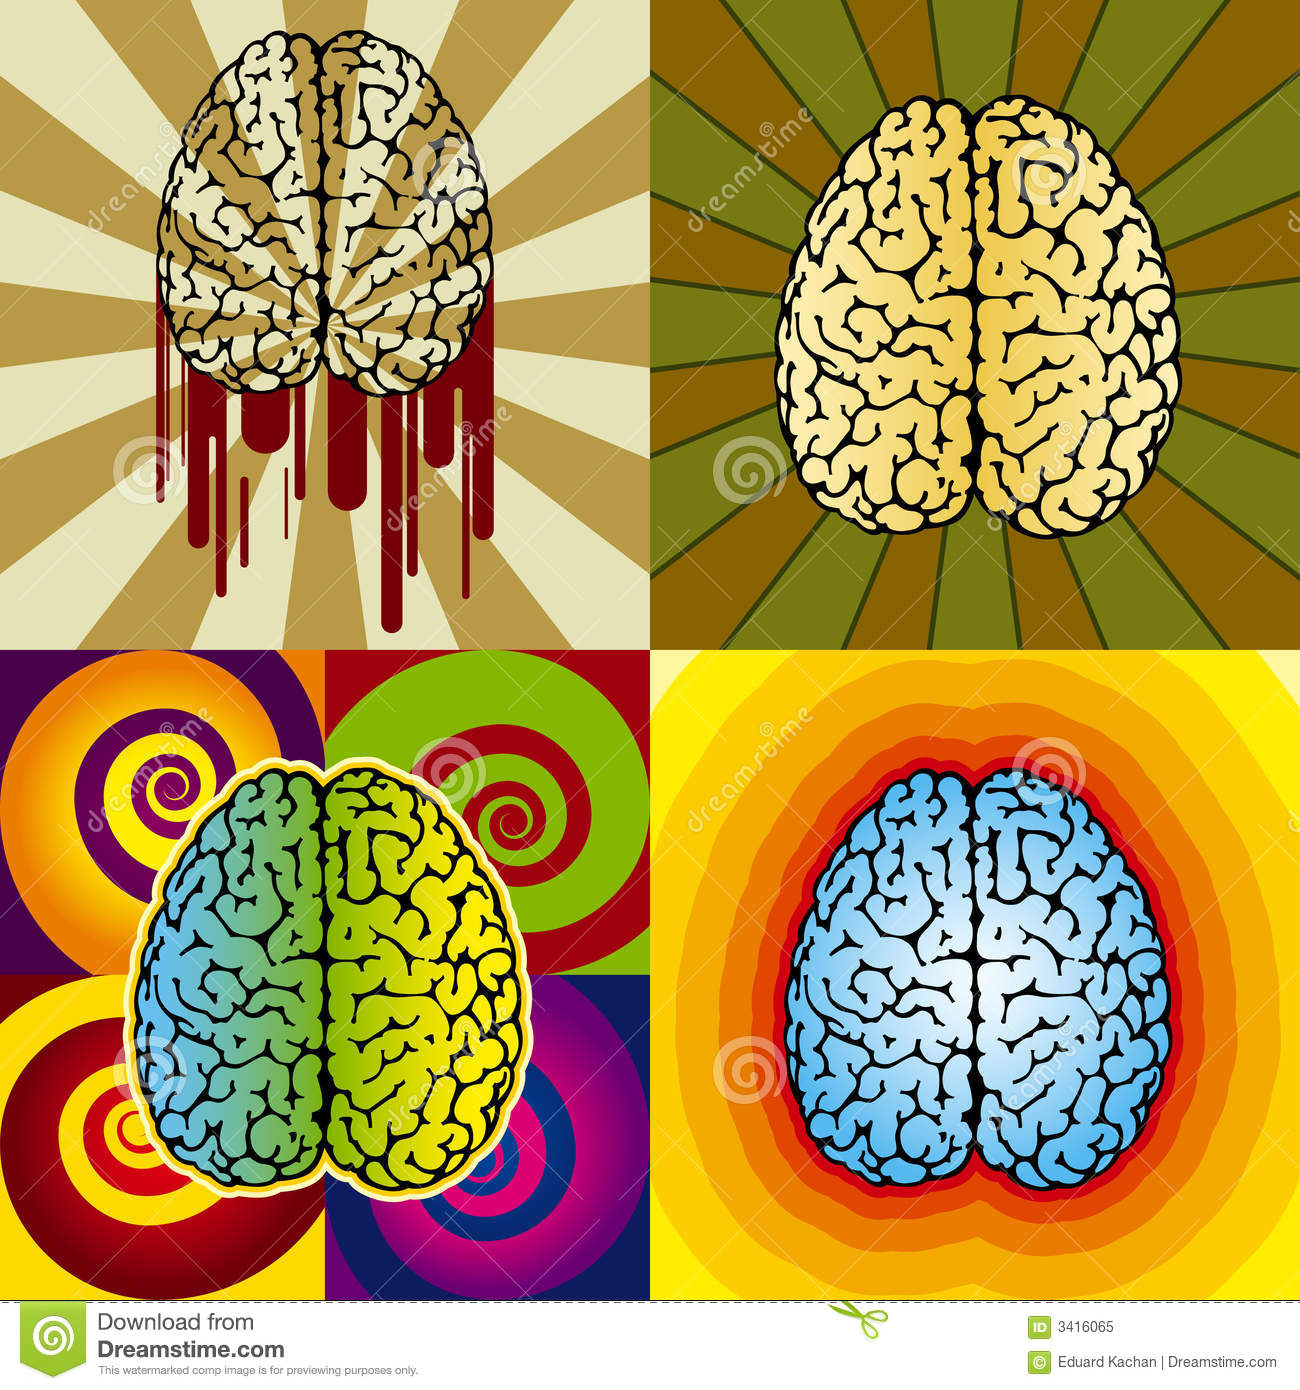 brain pattern wallpaper - photo #19